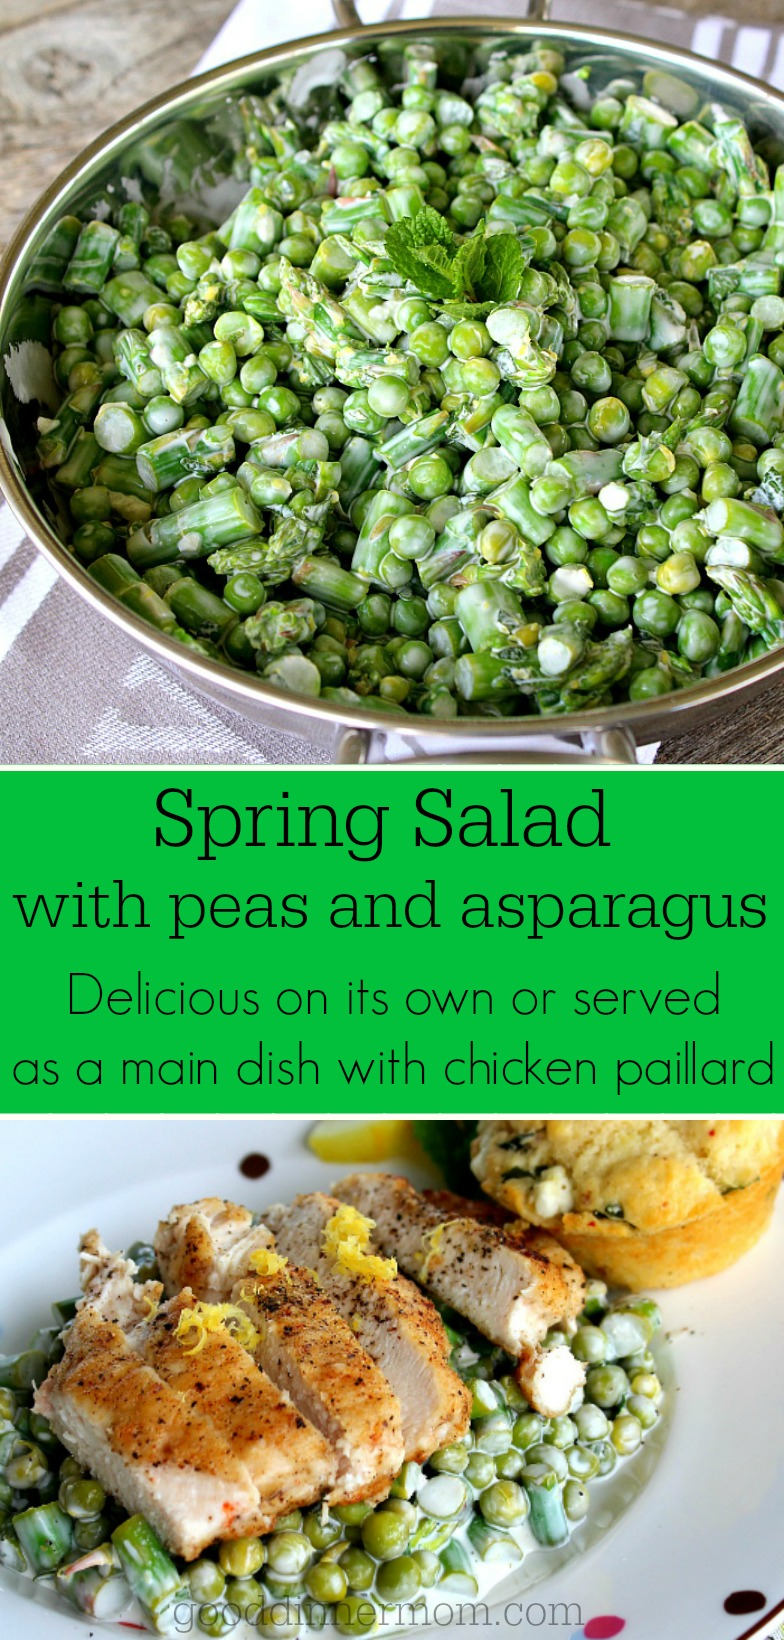 Tossed with fresh mint, lemon zest, garlic, parsley, mayo and lemon juice, this salad is light and delicious.